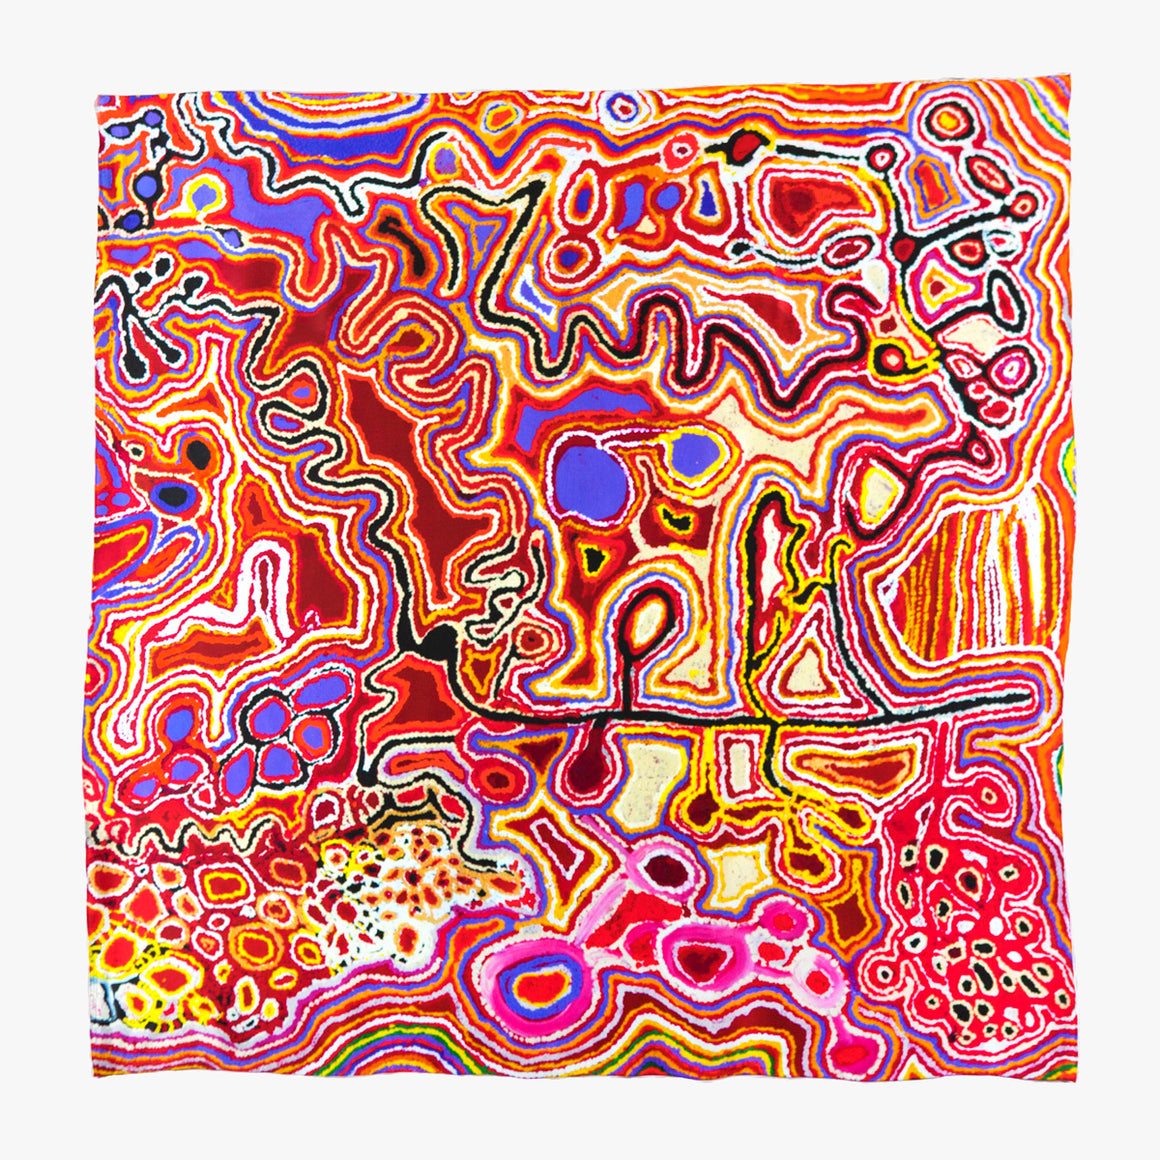 a Silk scarf , printed with an abstract Aboriginal artwork. Intensley coloured stippled lines and circles create an aerial view of country. In vibrant and contrasting tones of red, pink, orange, yellow, blue, purple, white and black.